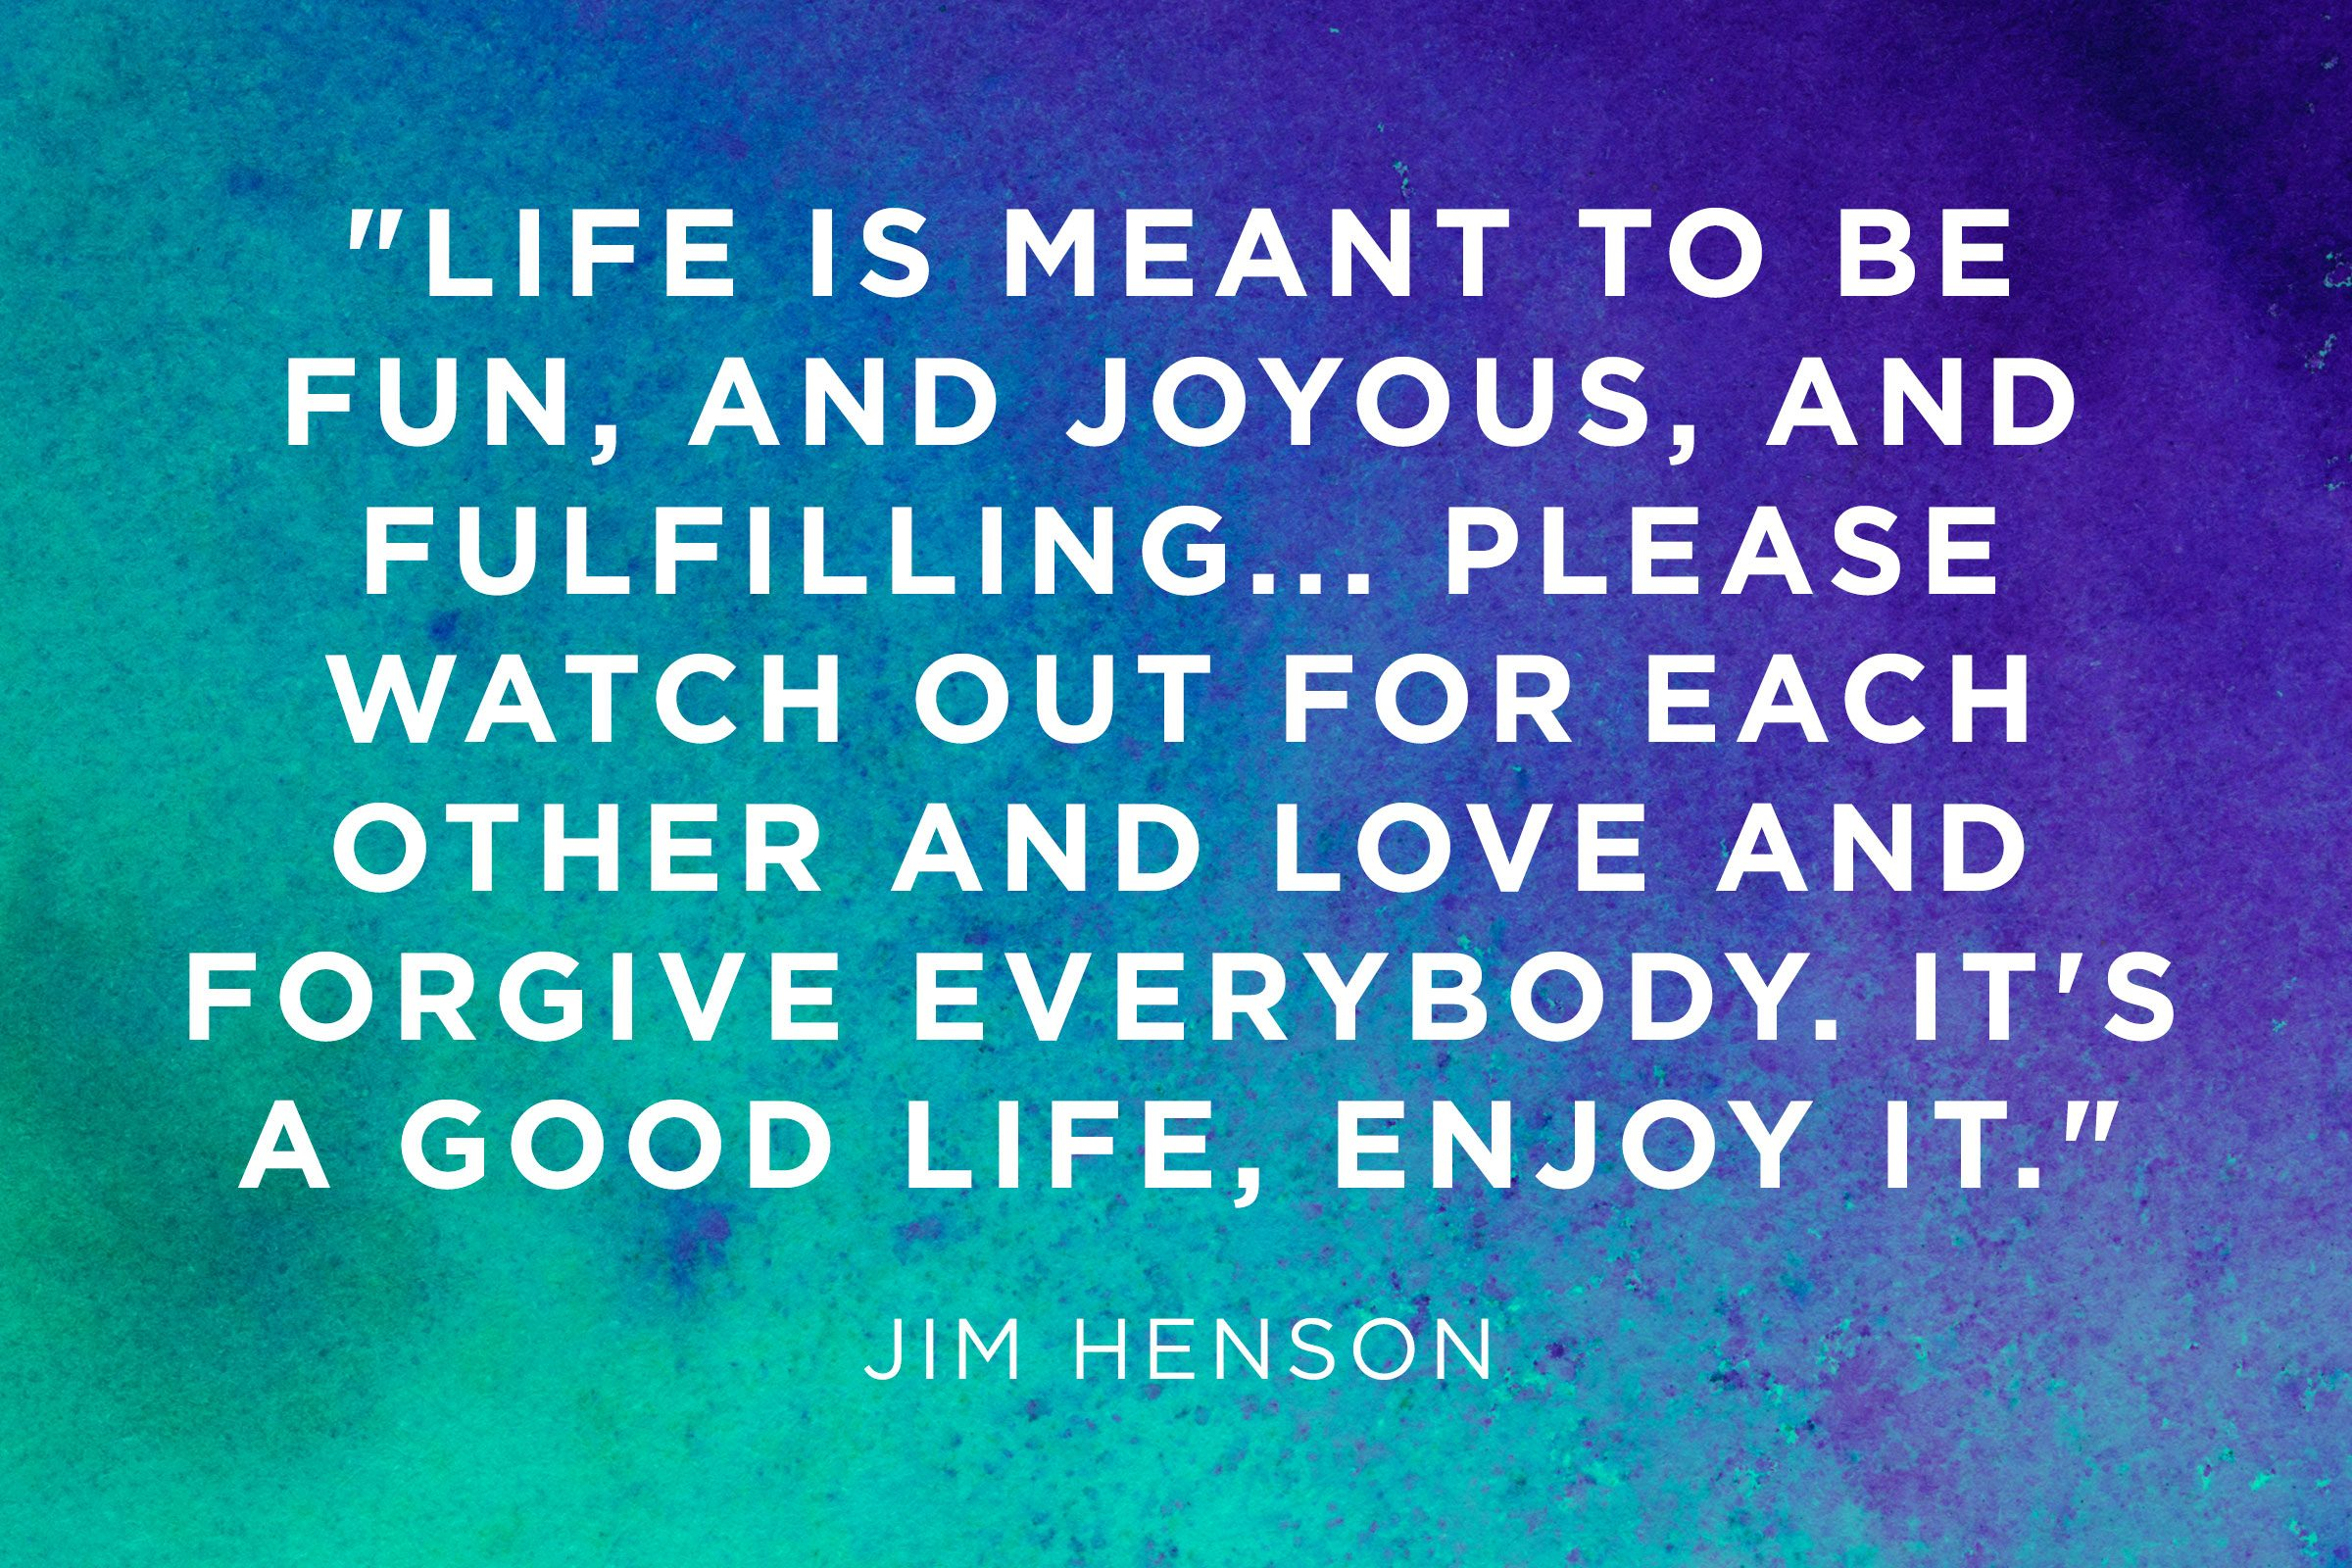 Beautiful Jim Henson: The Meaning Of Life Is Compassion